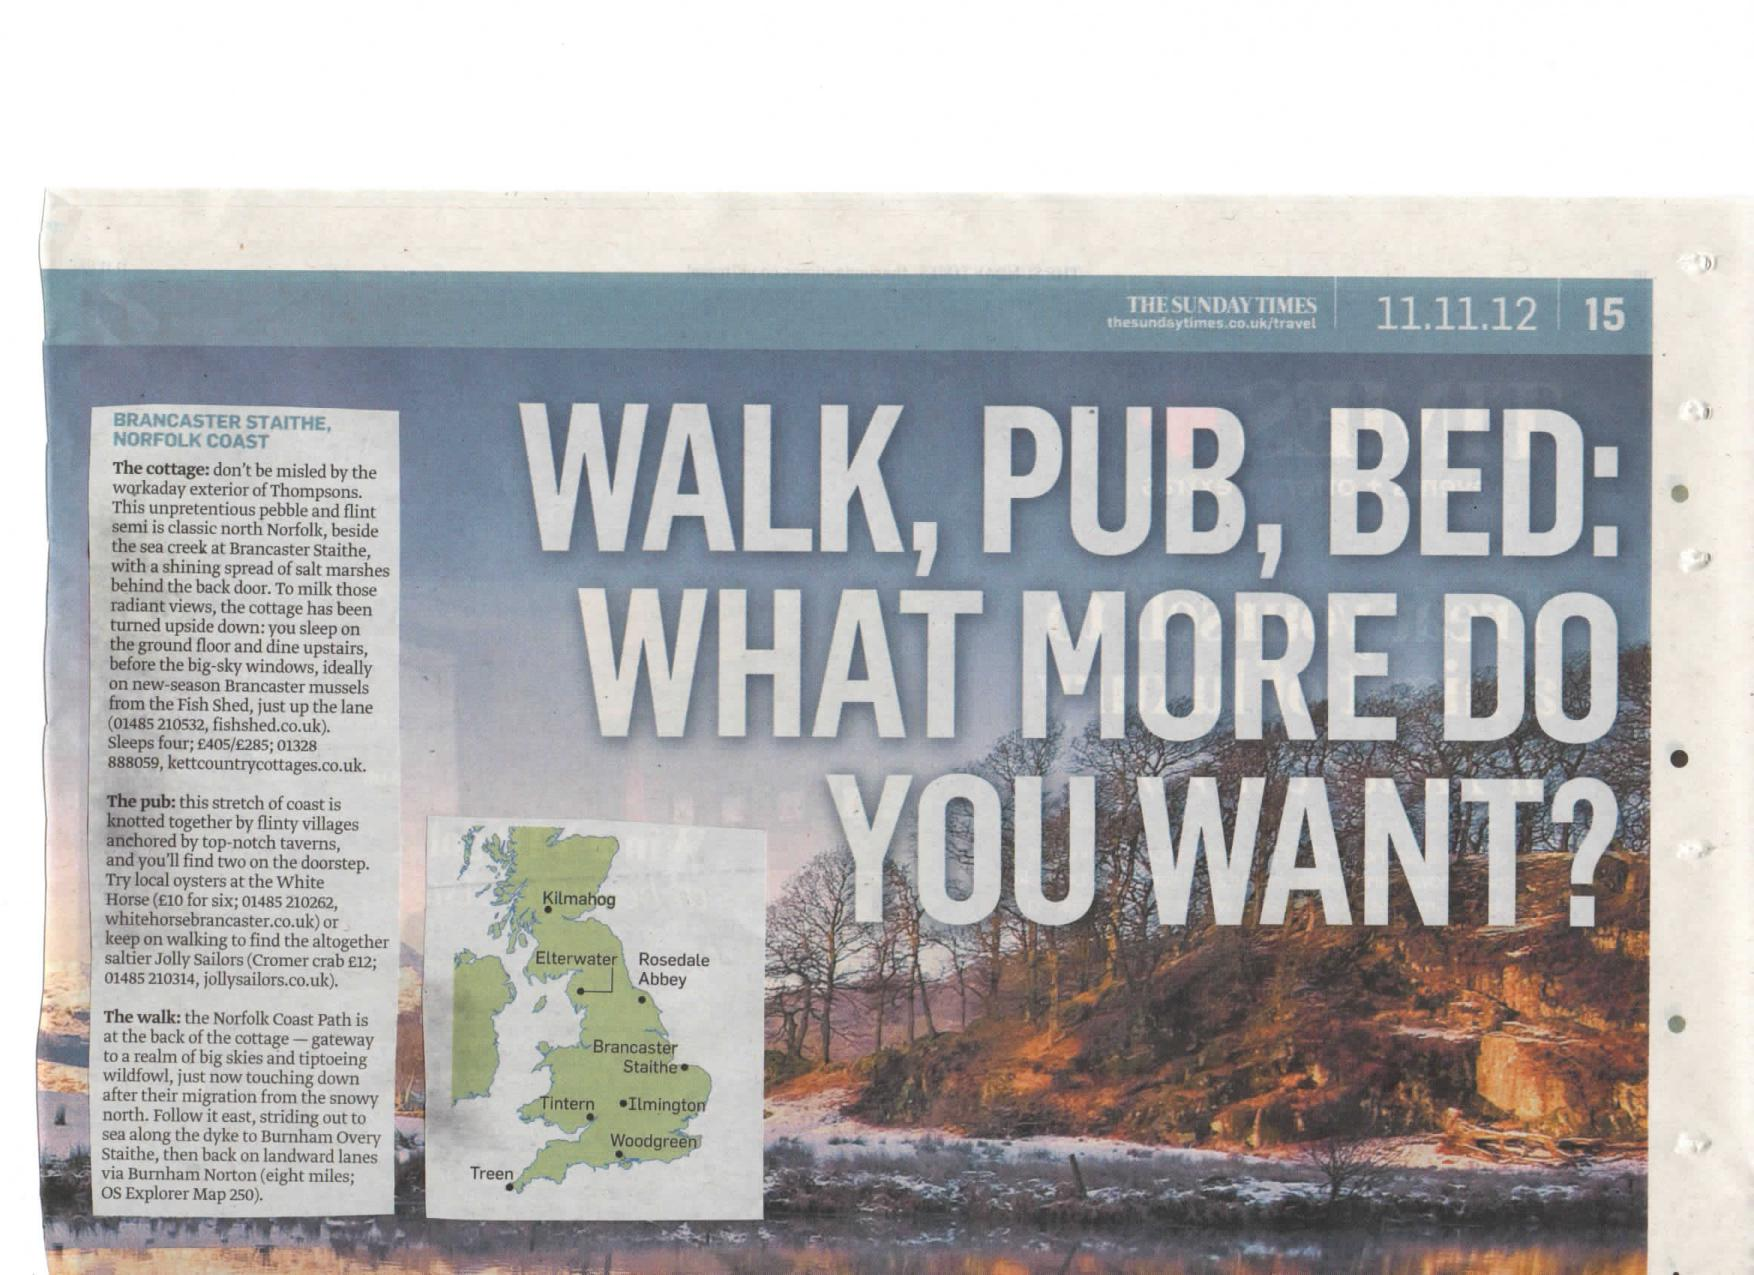 Walk, Pub, Bed: What More Do More Do You Want? - The Sunday Times